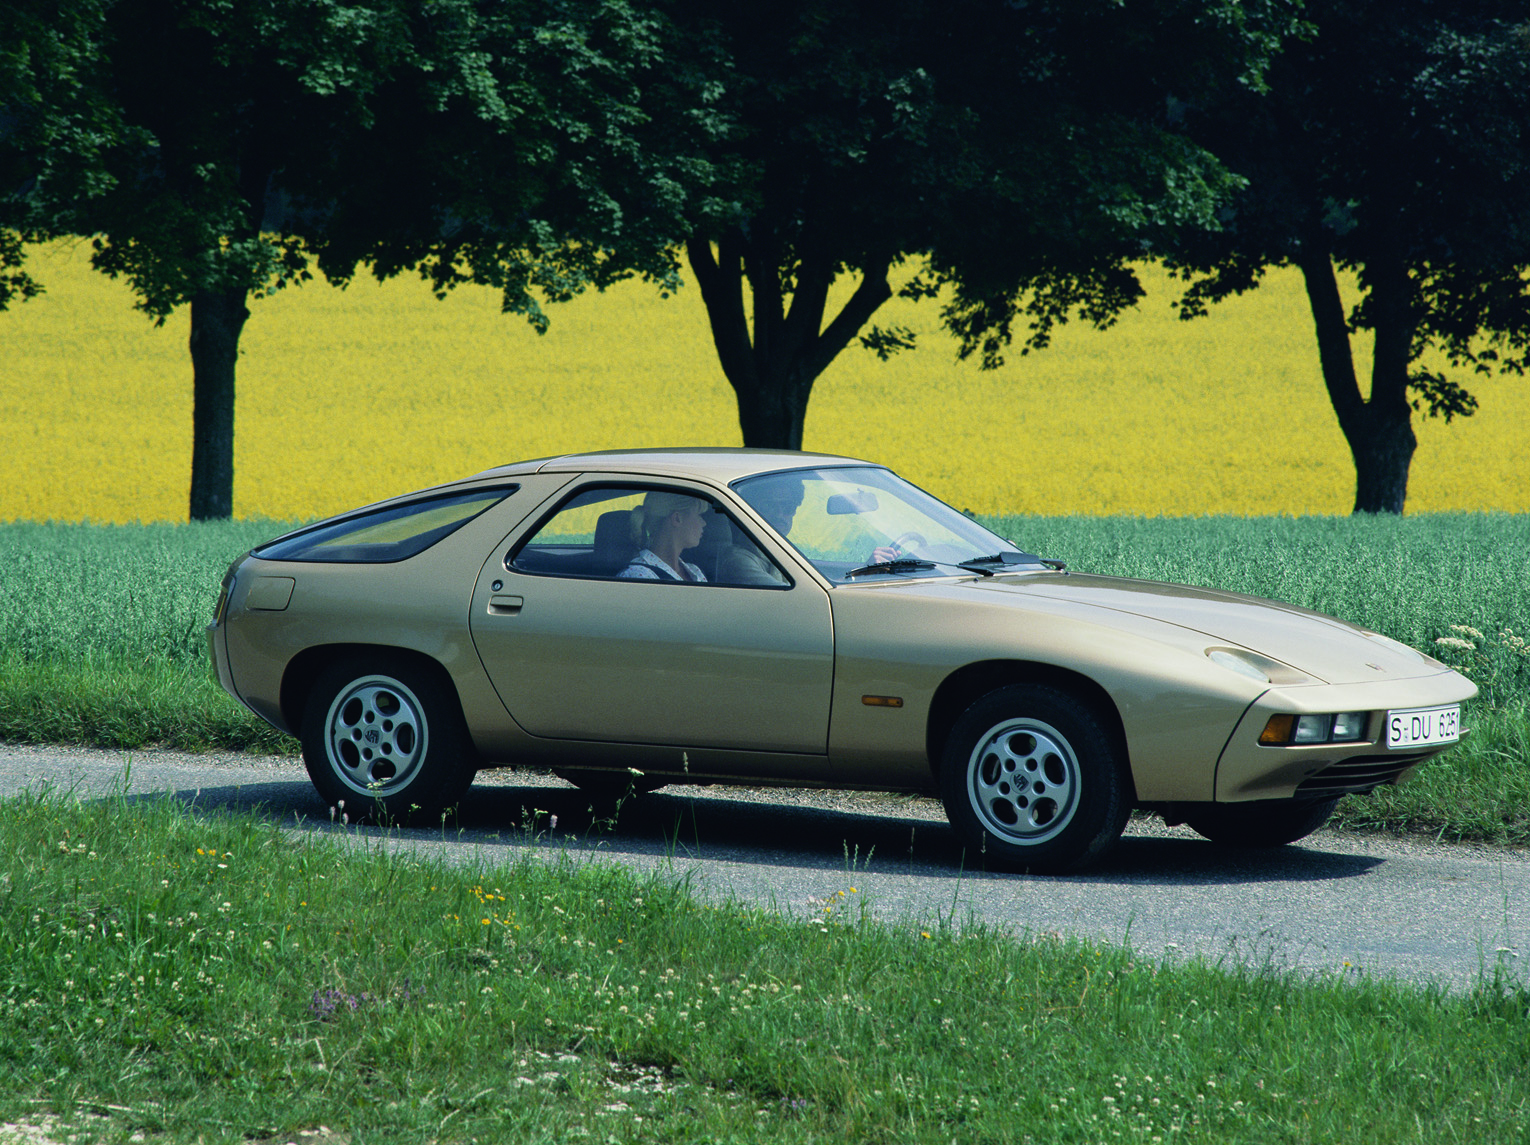 Porsche 928 wanted for Goodwood Revival